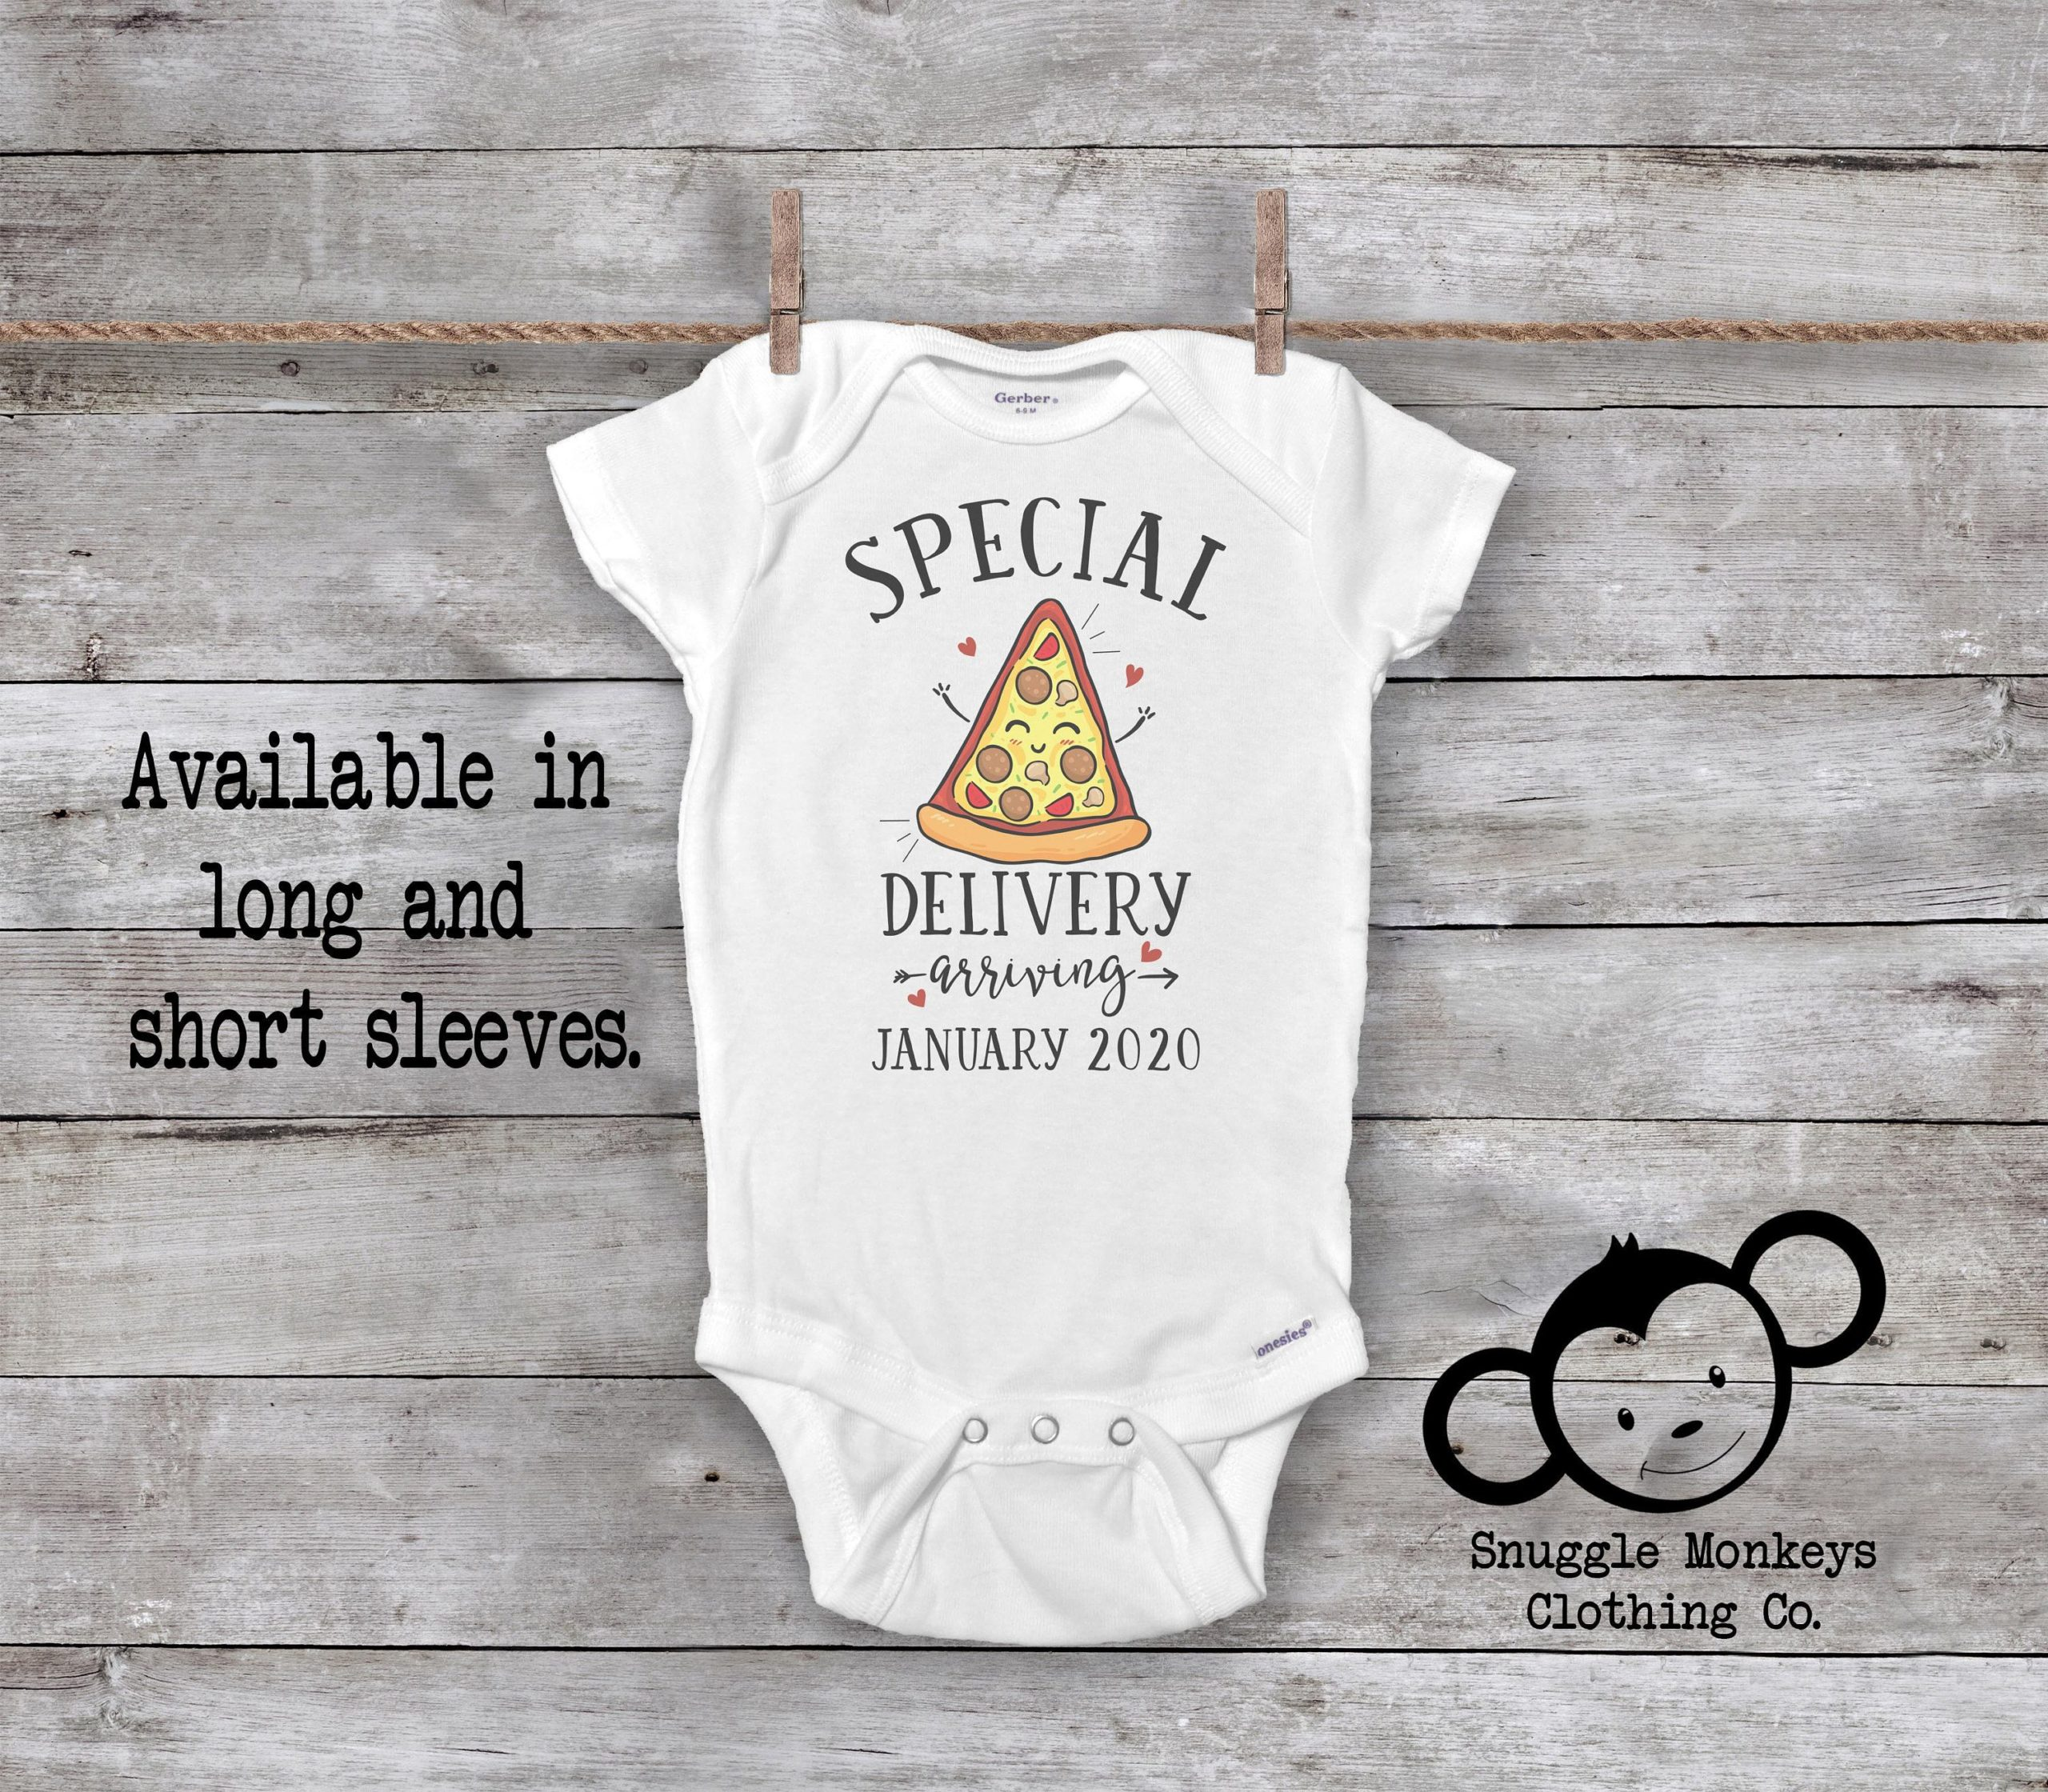 Special Delivery Onesie®, Pregnancy Announcement, Pregnancy Reveal Onesie, Pregnancy Reveal to Grandparents, Pregnancy Reveal to Husband